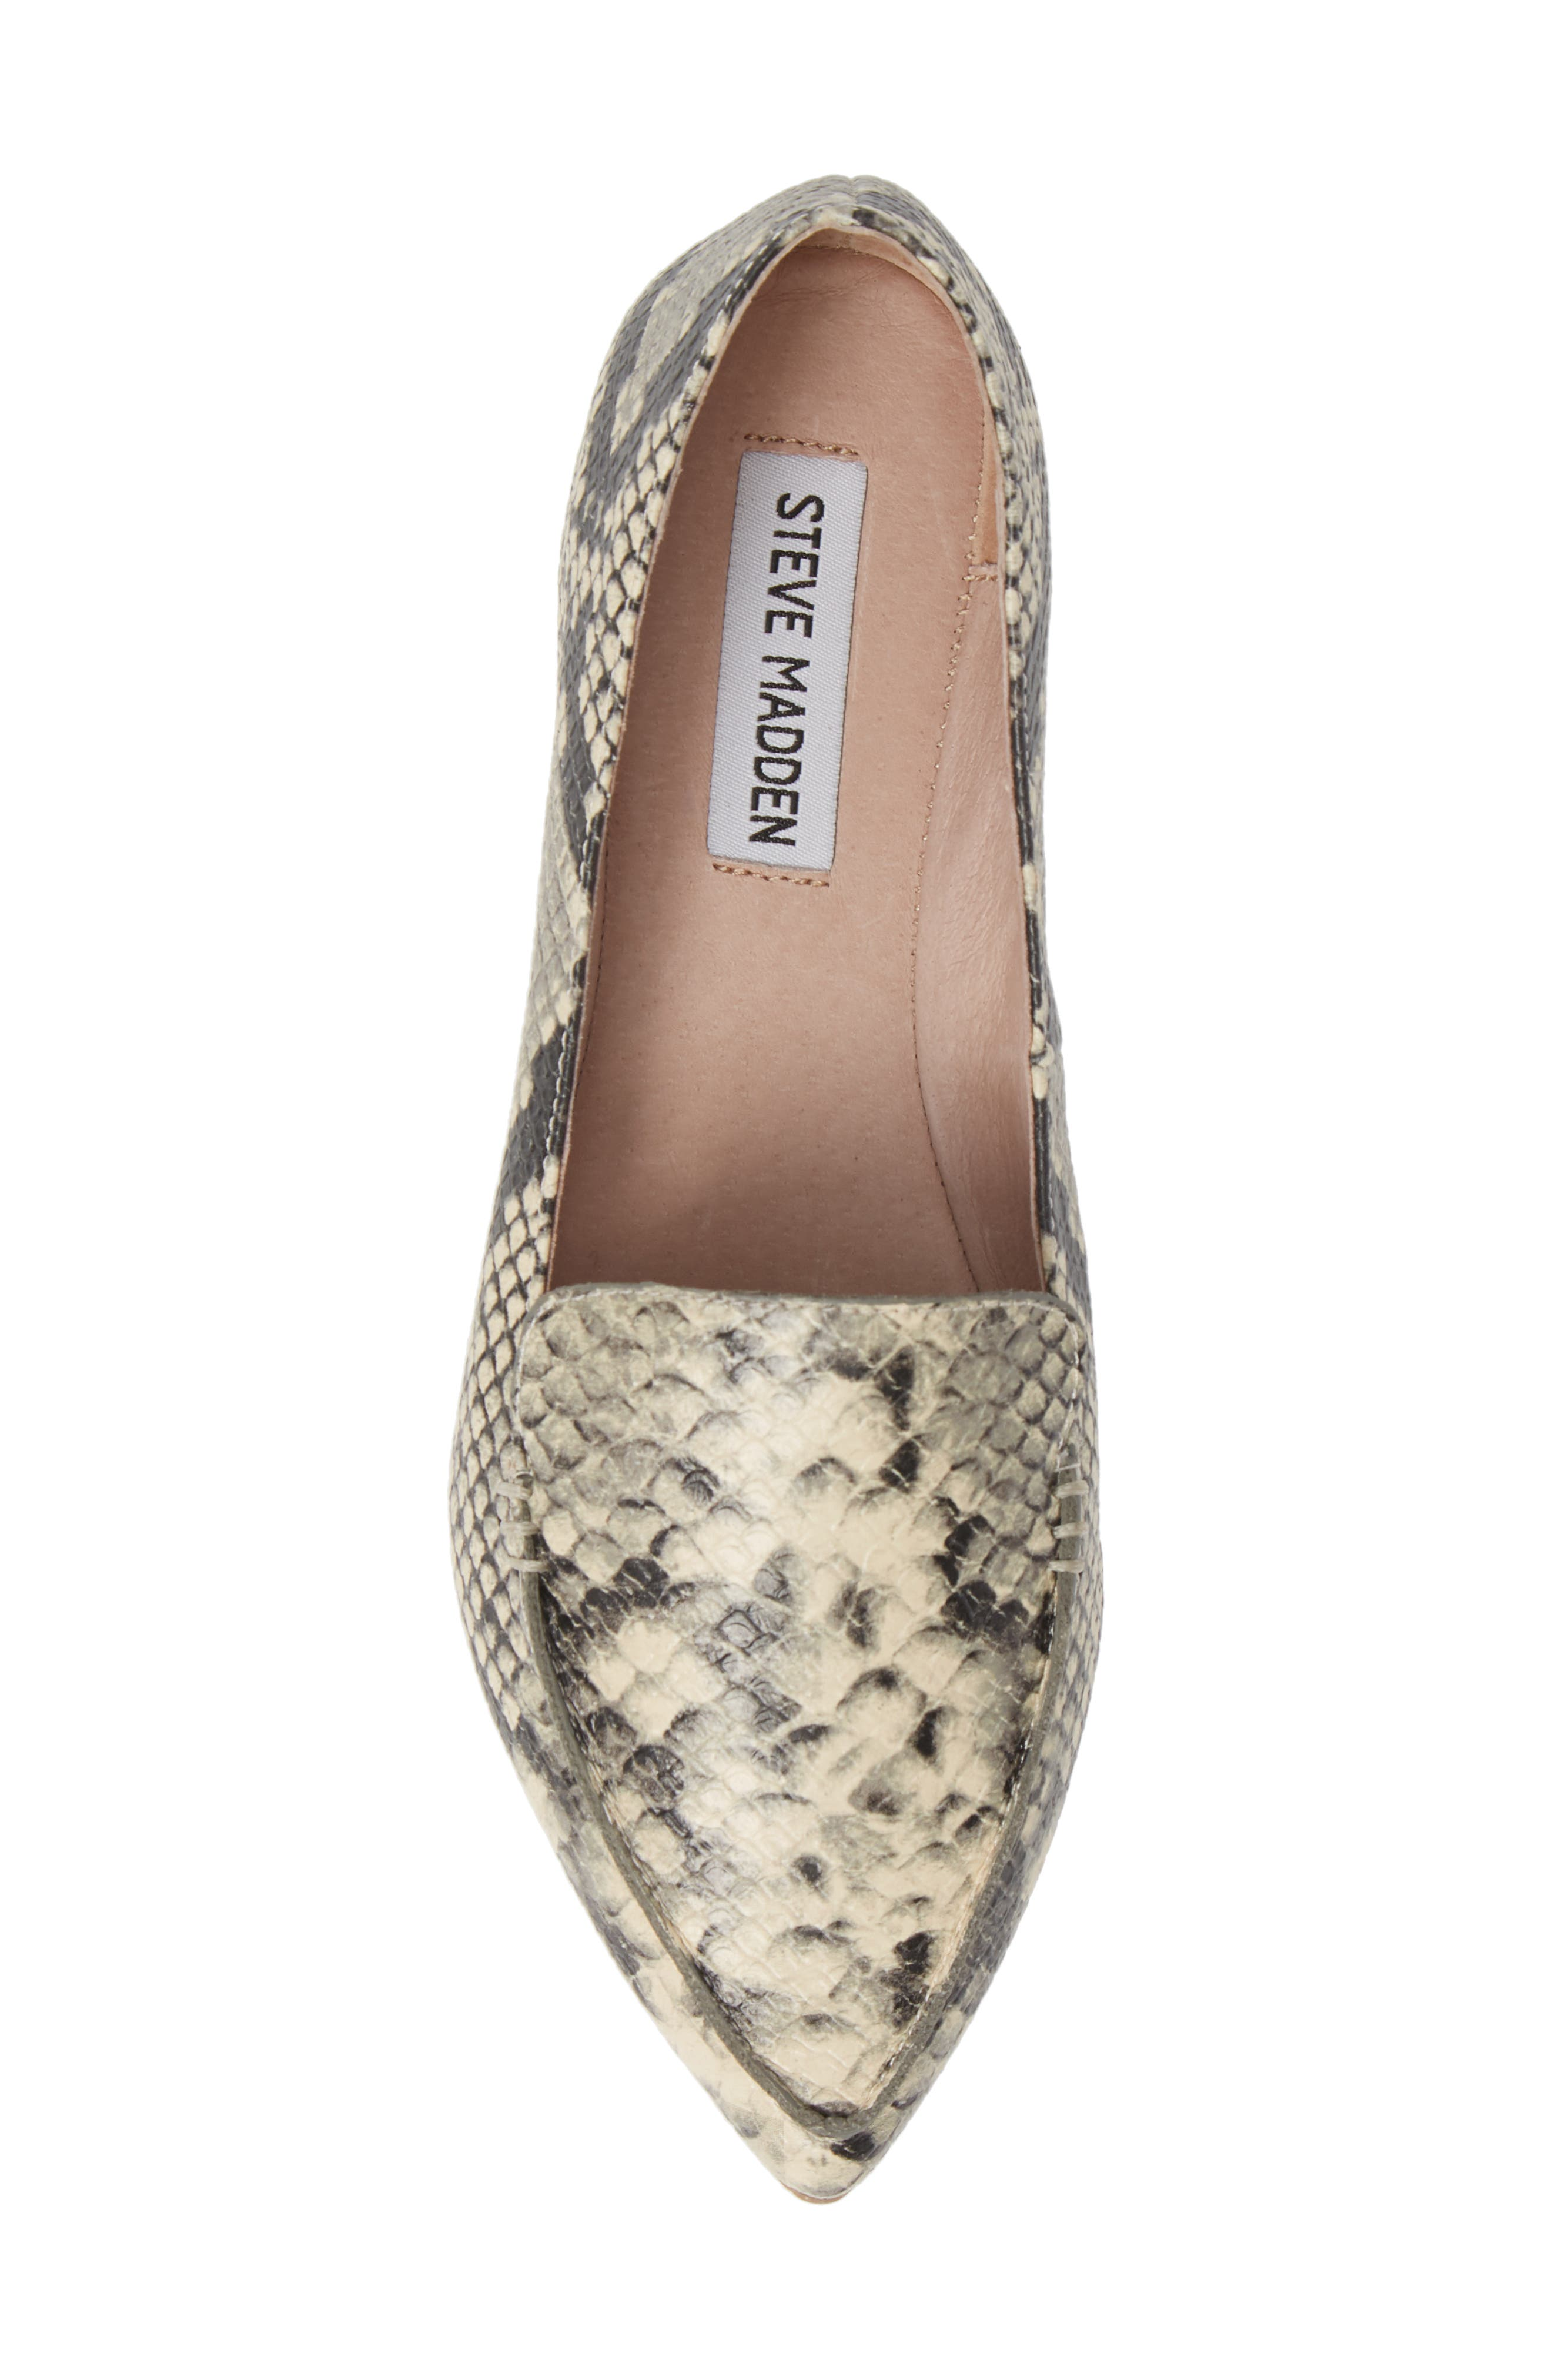 Feather Loafer Flat,                             Alternate thumbnail 5, color,                             SNAKE PRINT LEATHER